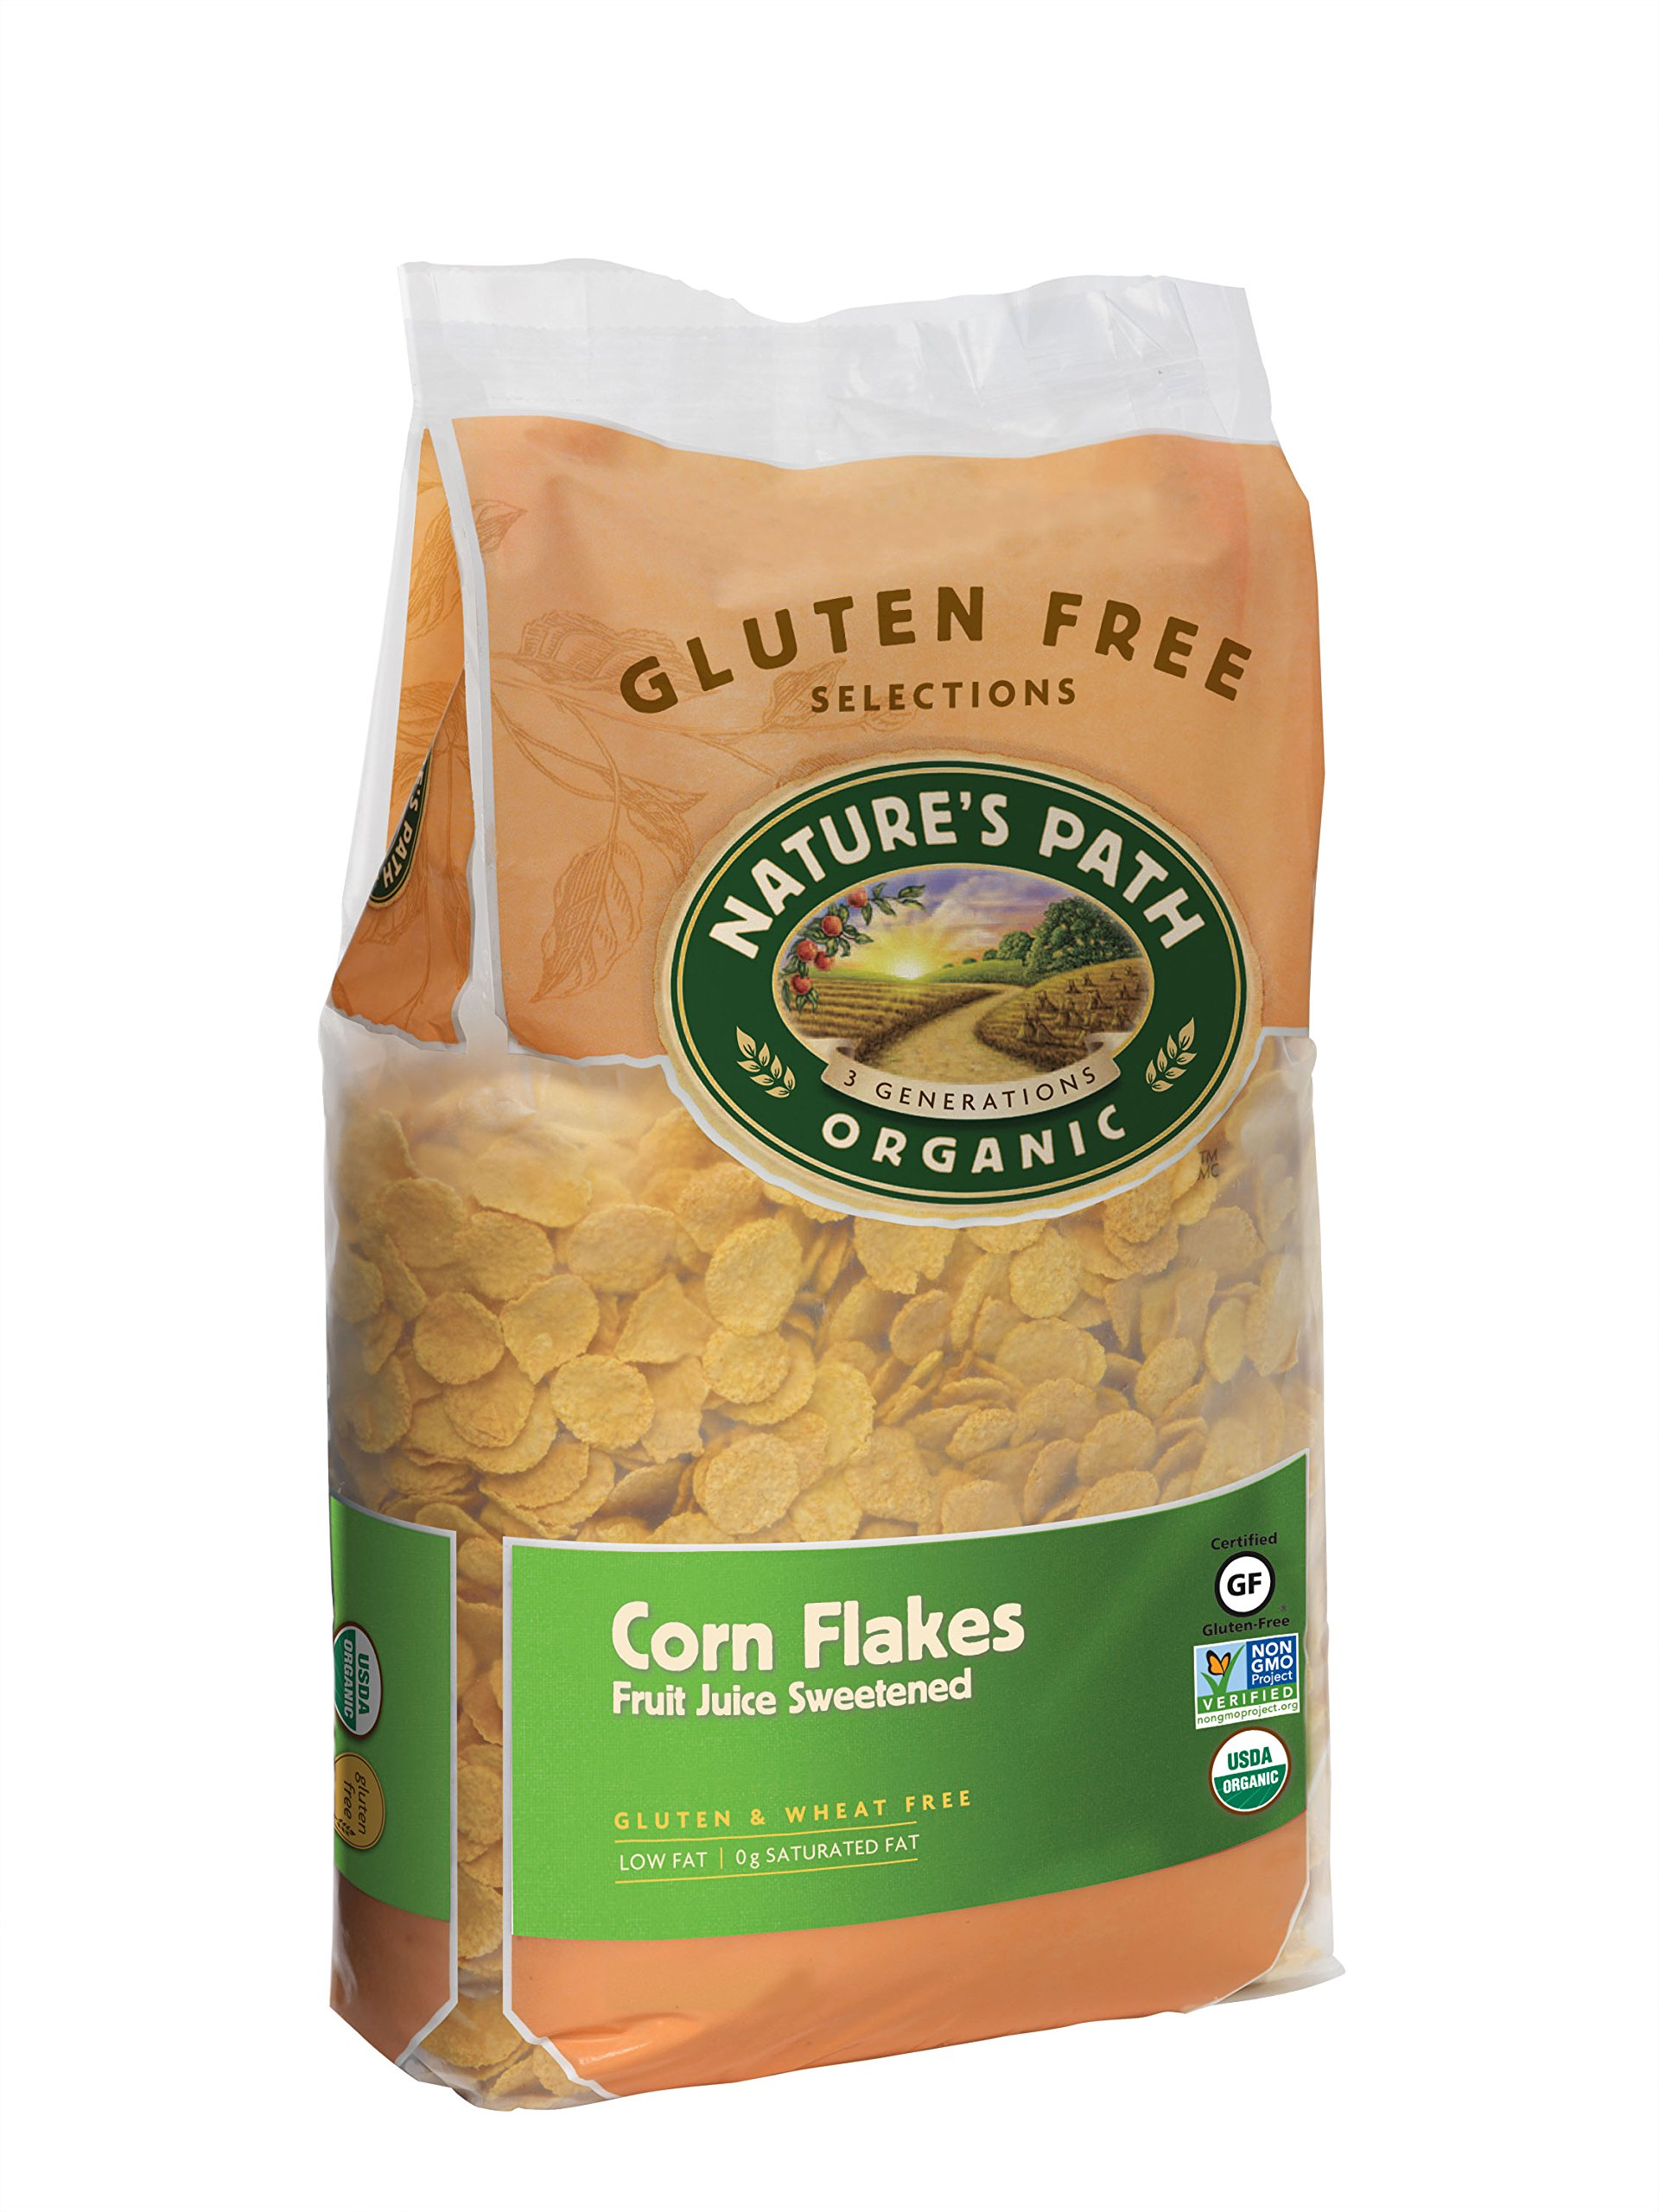 Nature's Path Organic Gluten-Free Cereal, Corn Flakes Sweetened with Fruit Juice, 26.4 Ounce Bag (Pack of 6)